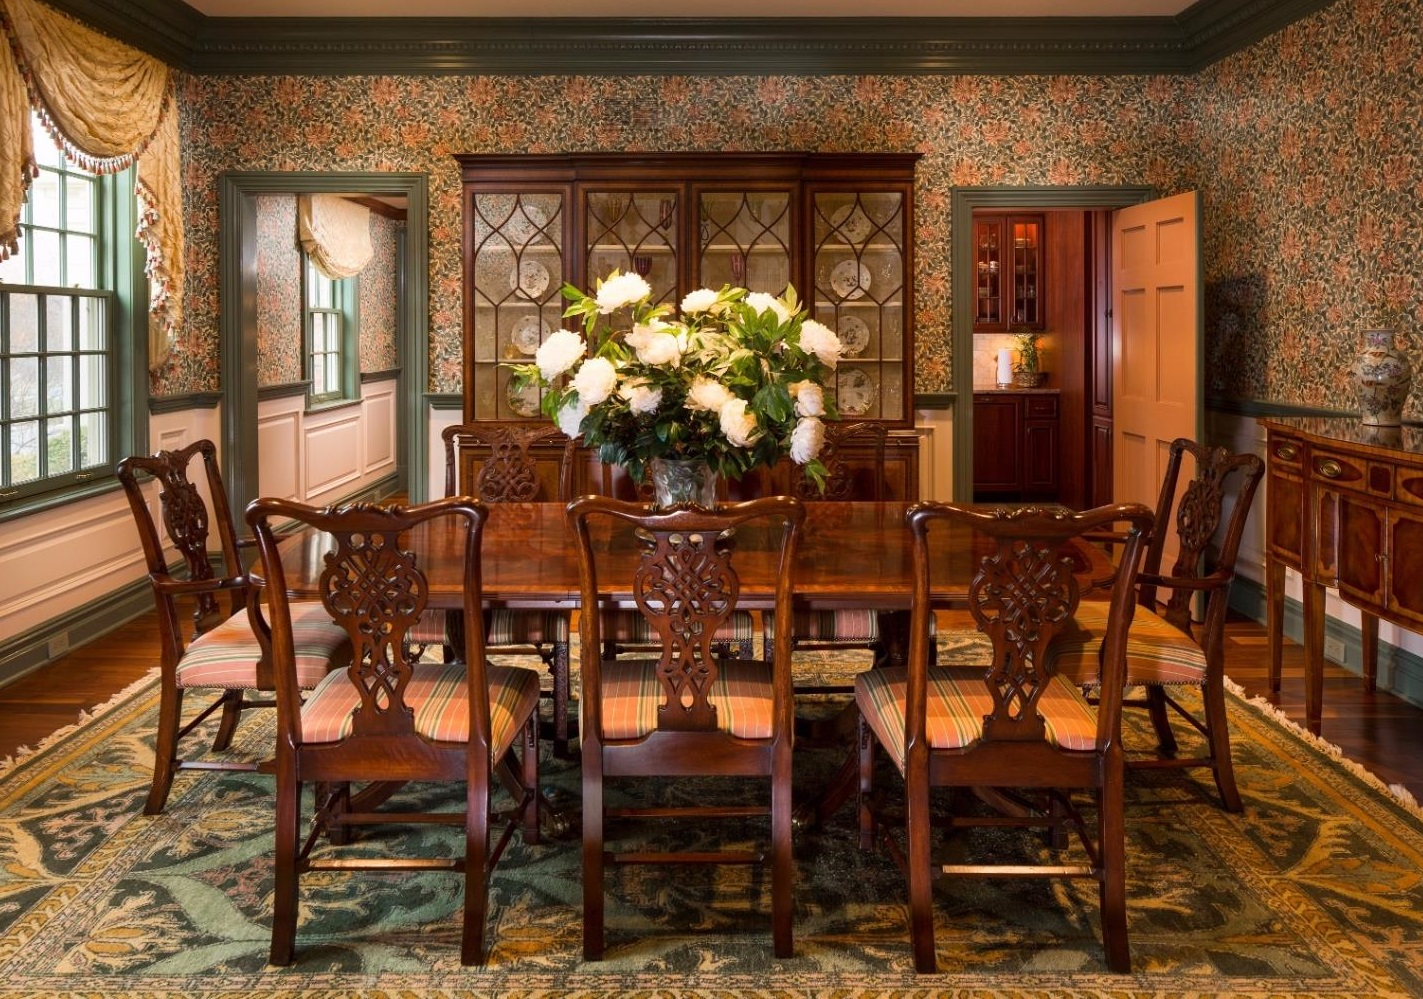 Formal Dining Princeton NJ | Princeton NJ Homes for Sale | Steve Walny Realtor